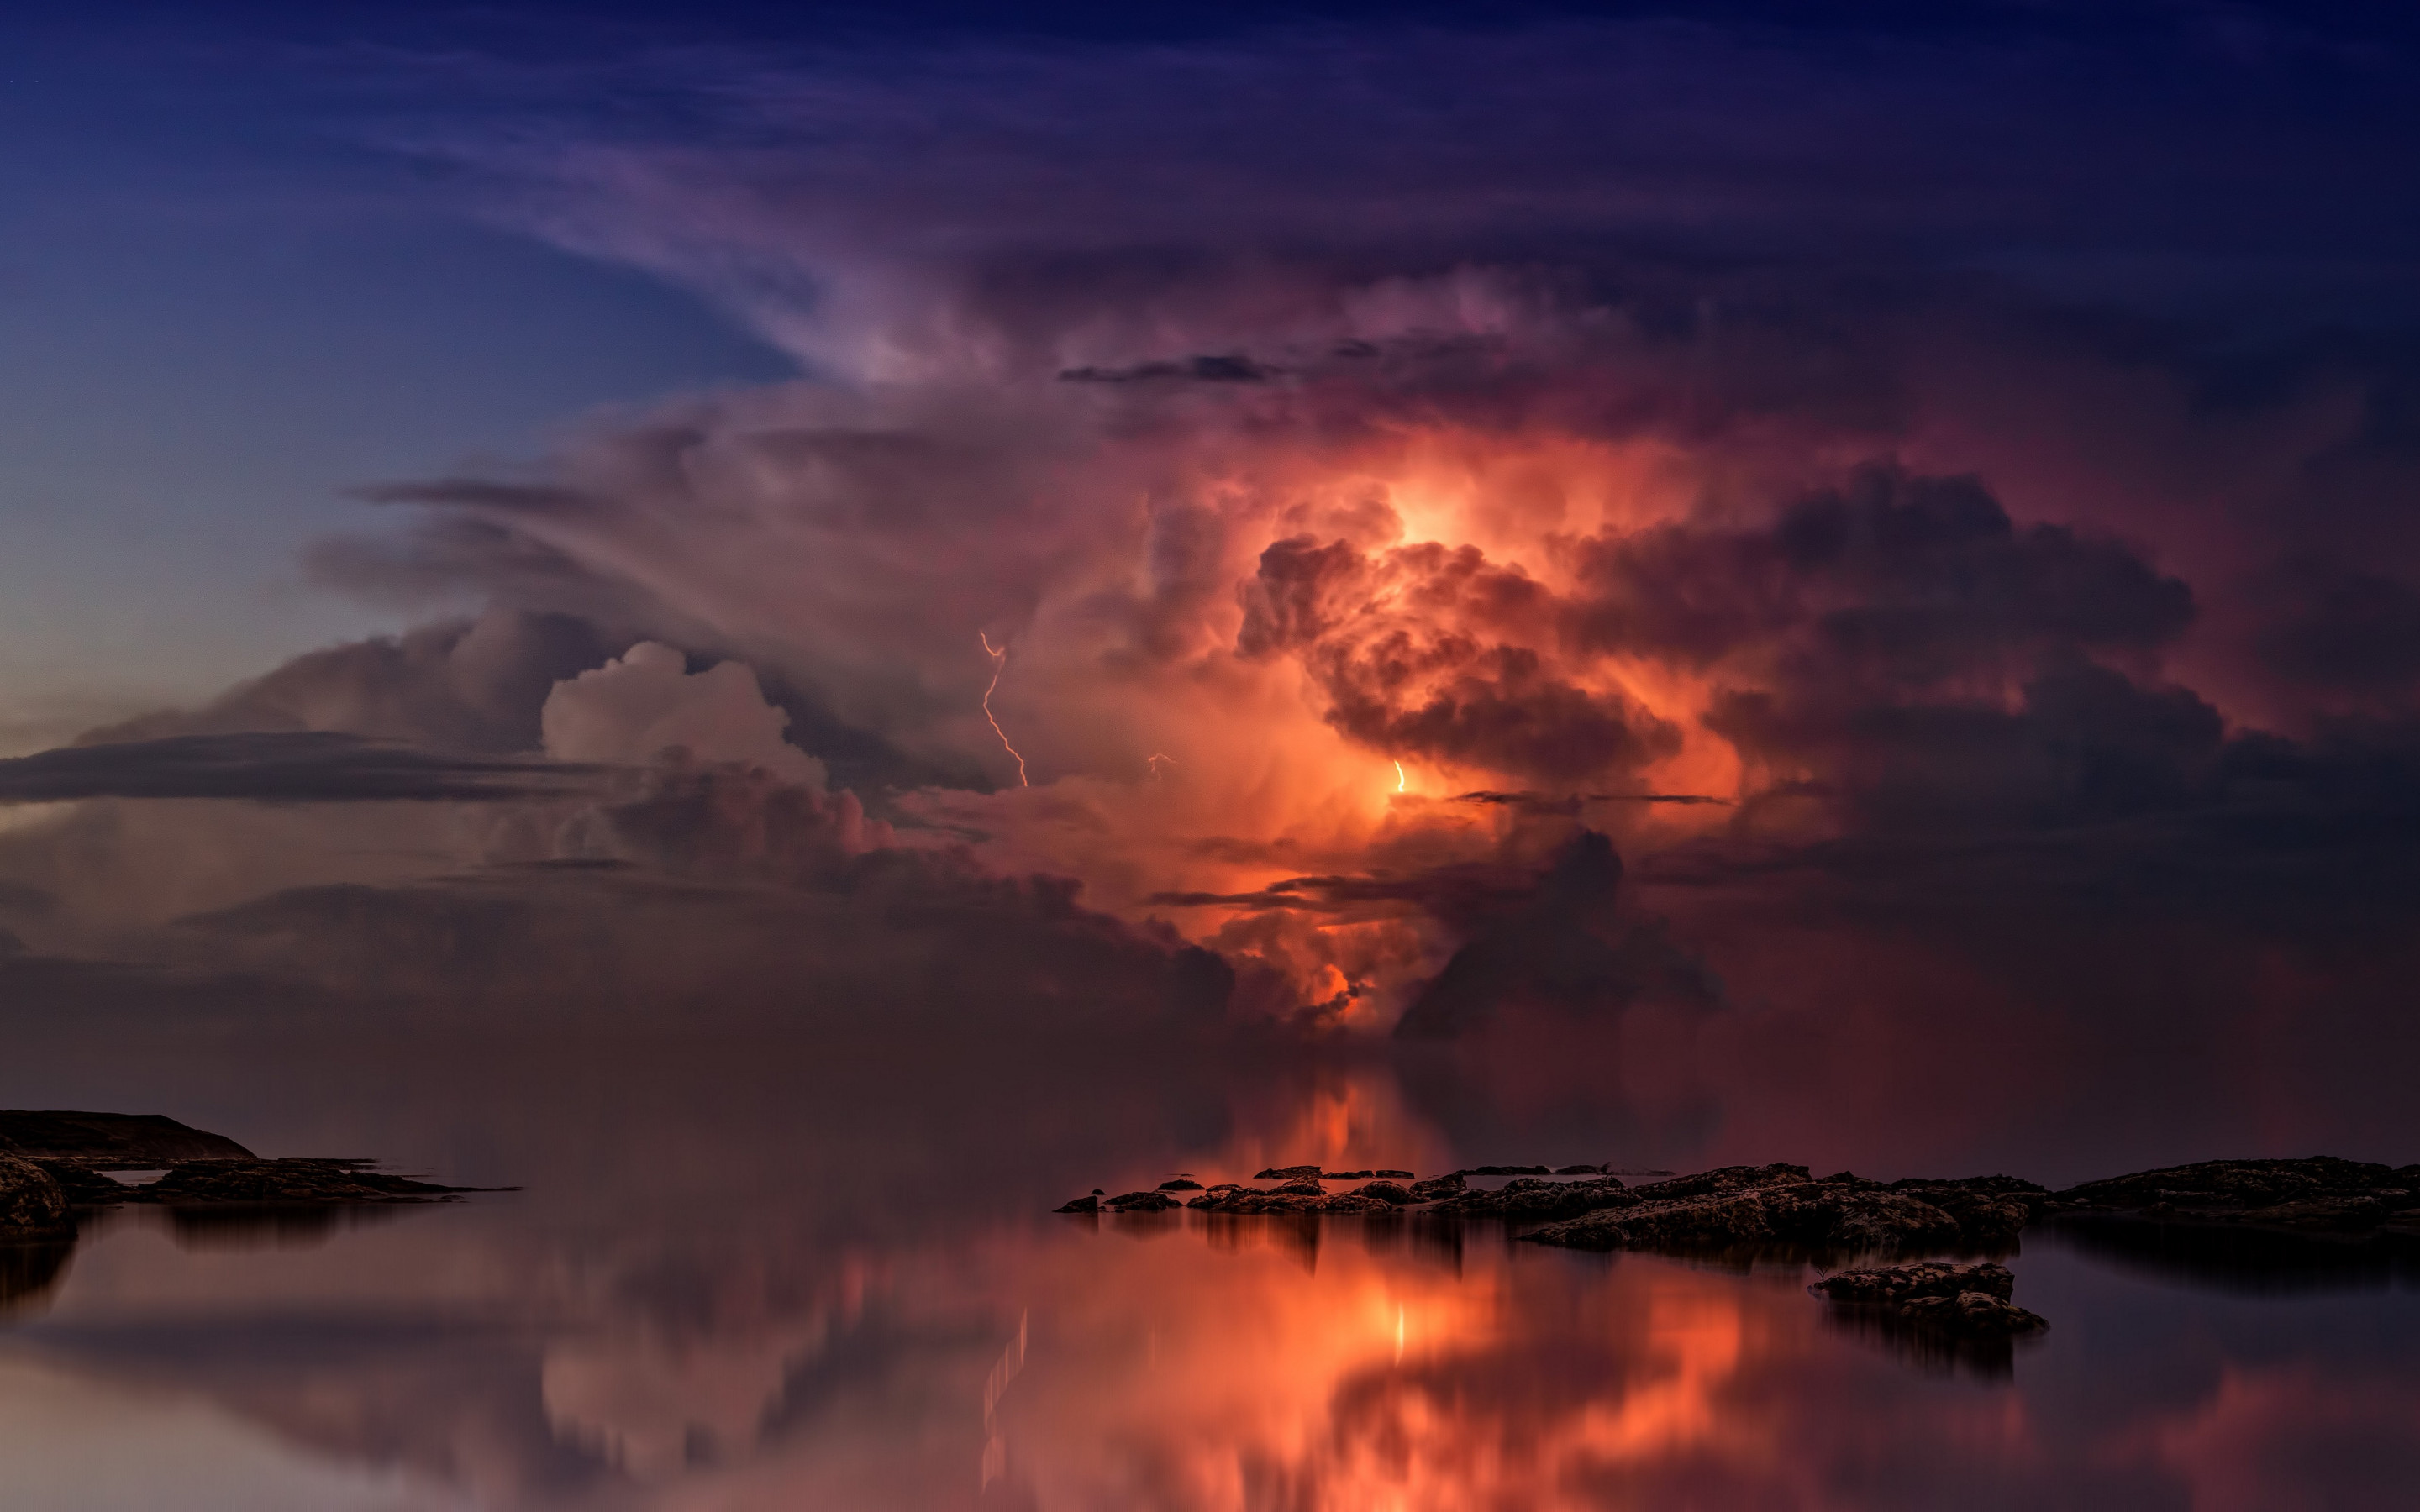 Lightning and thunderstorm in the sky wallpaper 2880x1800